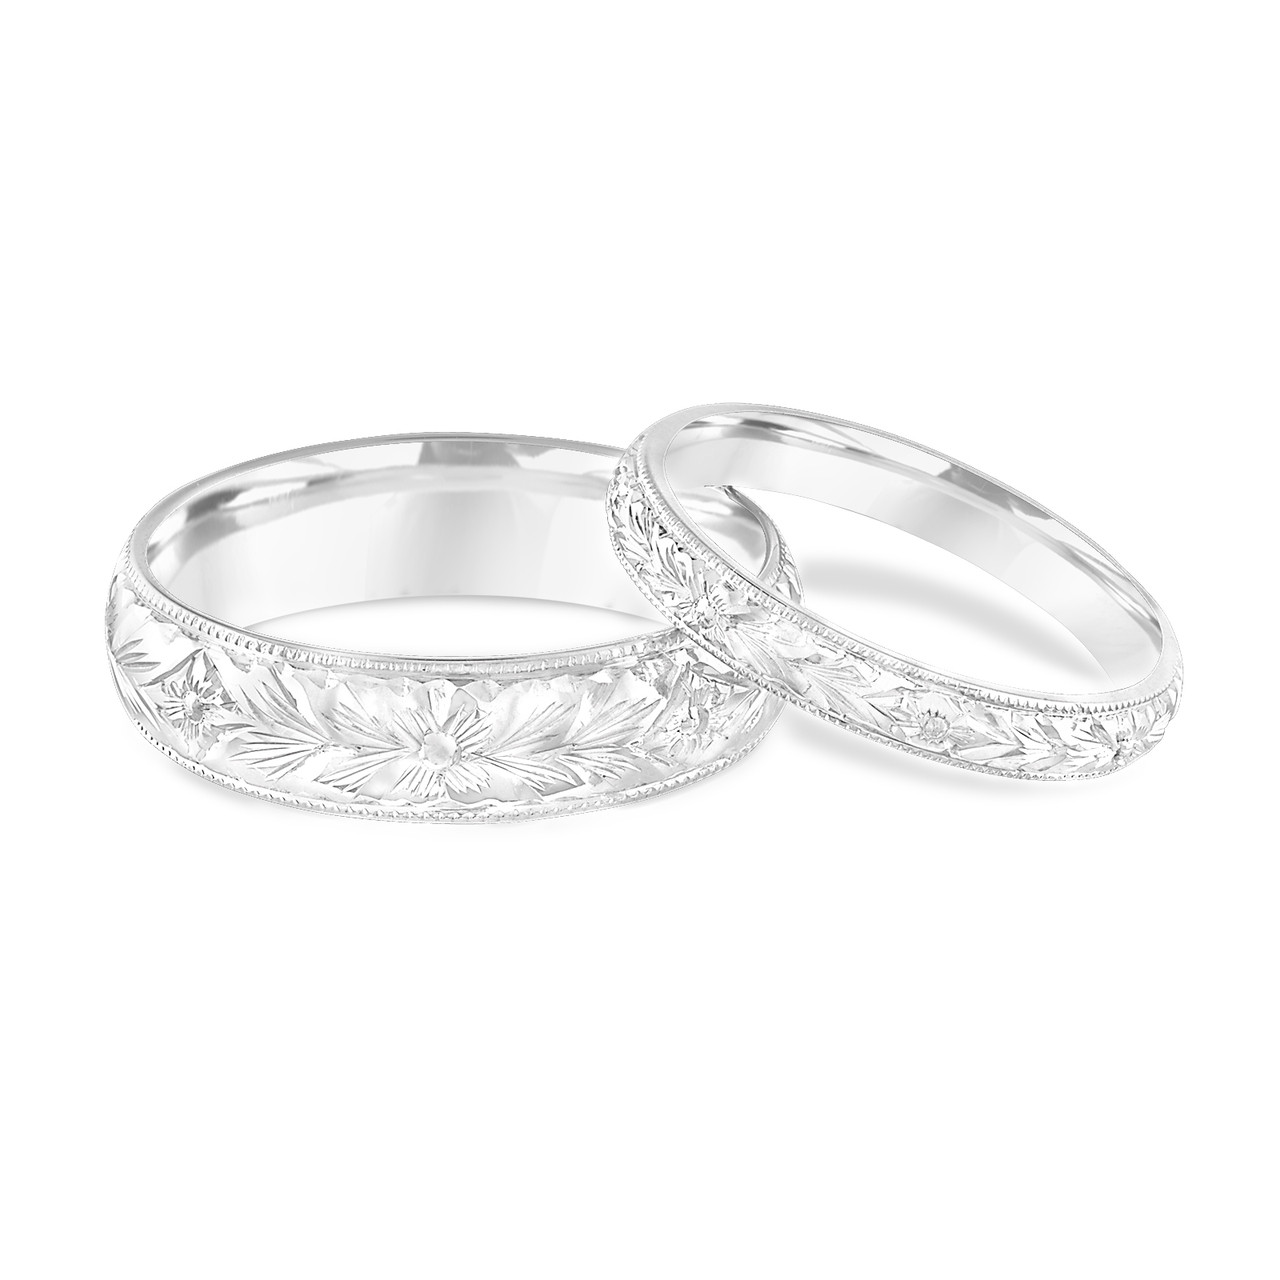 This is a graphic of Platinum Matching Wedding Rings, His and Hers Wedding Bands, Hand Engraved, Couple Wedding Bands Set, Vintage Wedding Bands, Handmade